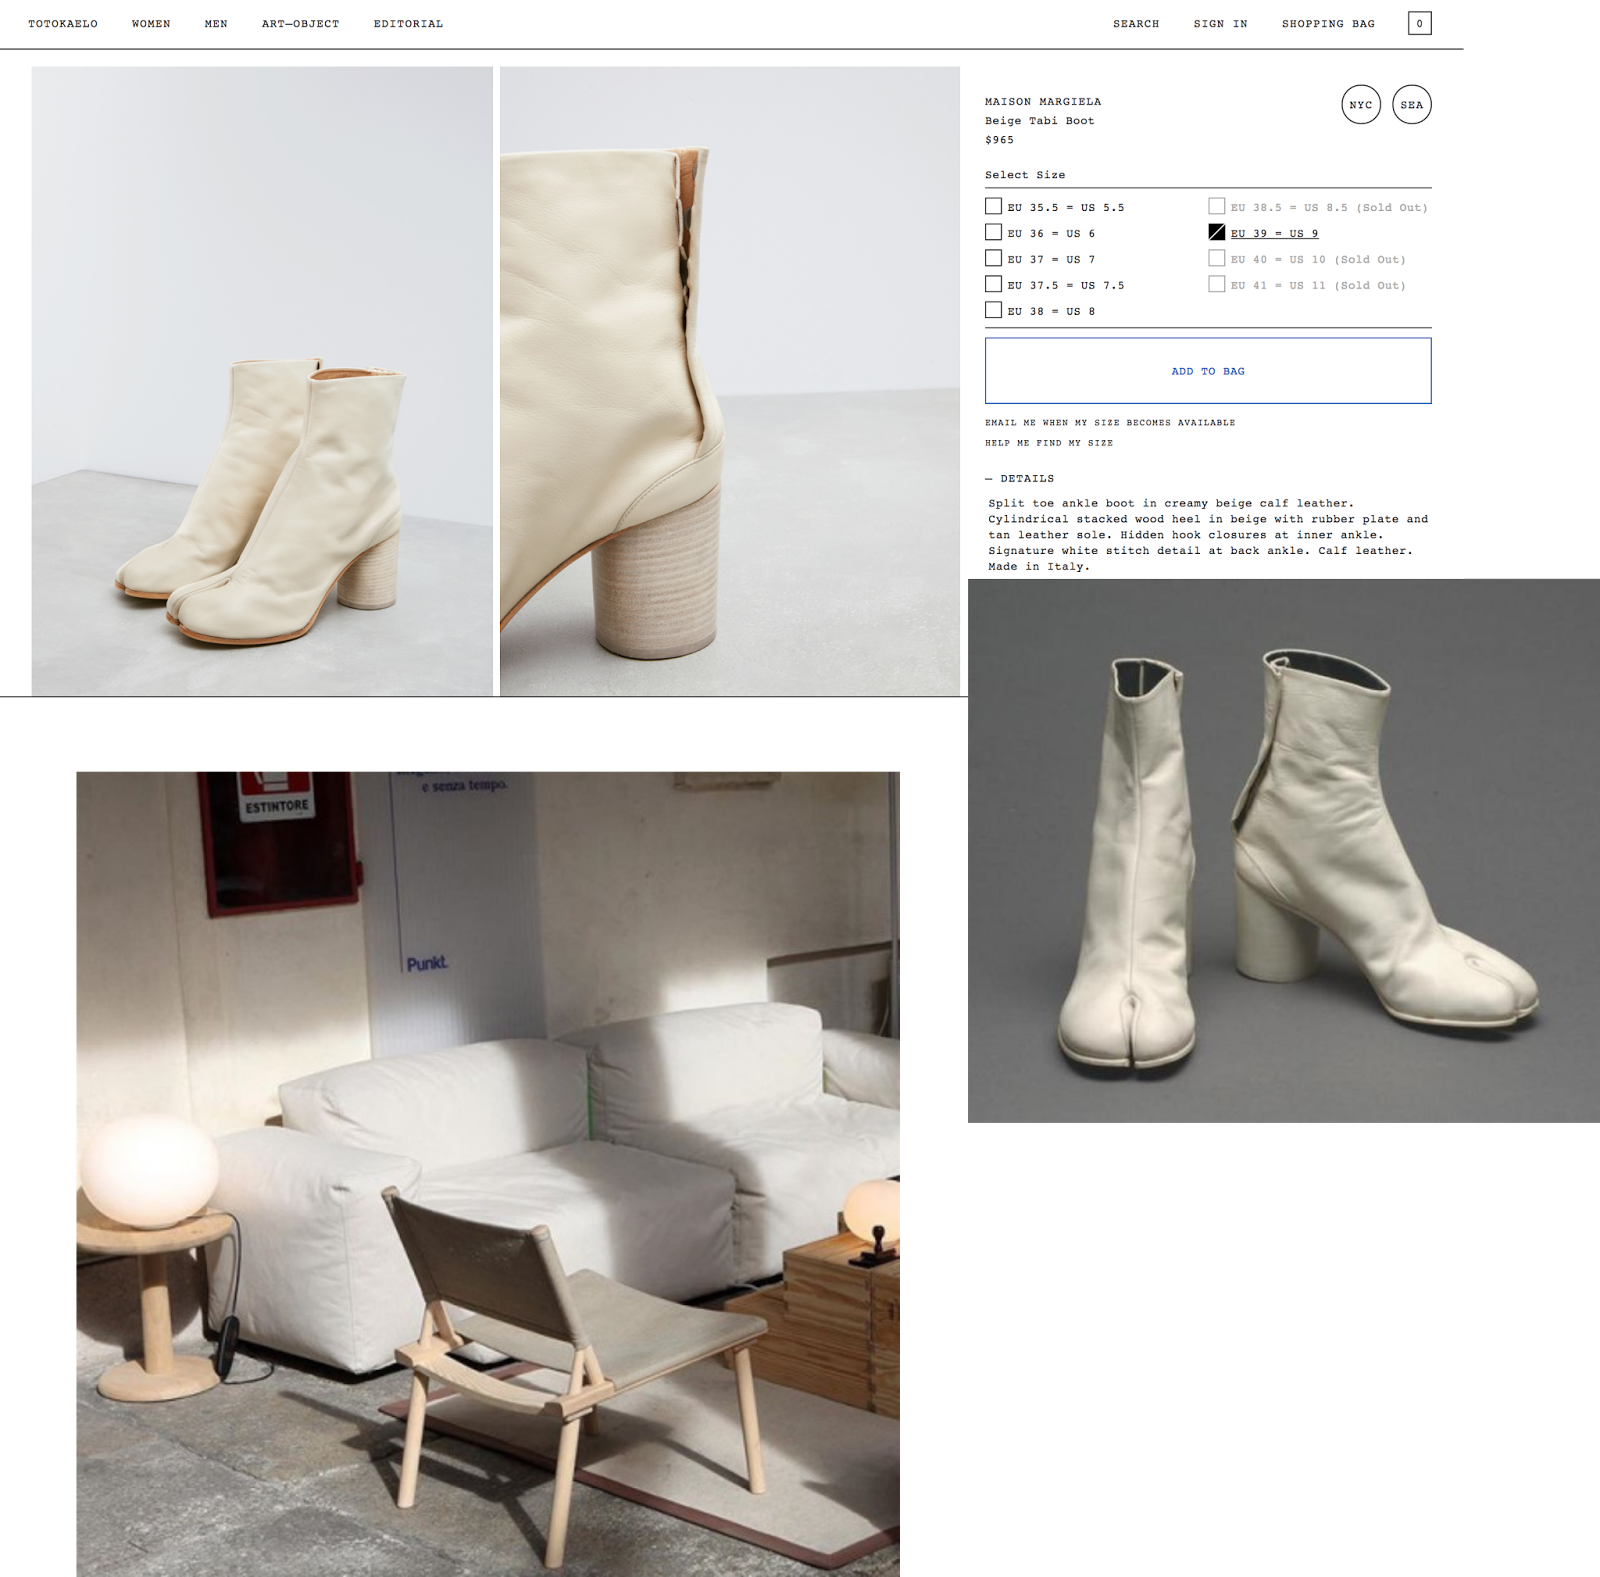 04704f82b13 Gold Russsh: The Margiela Tabi Boot